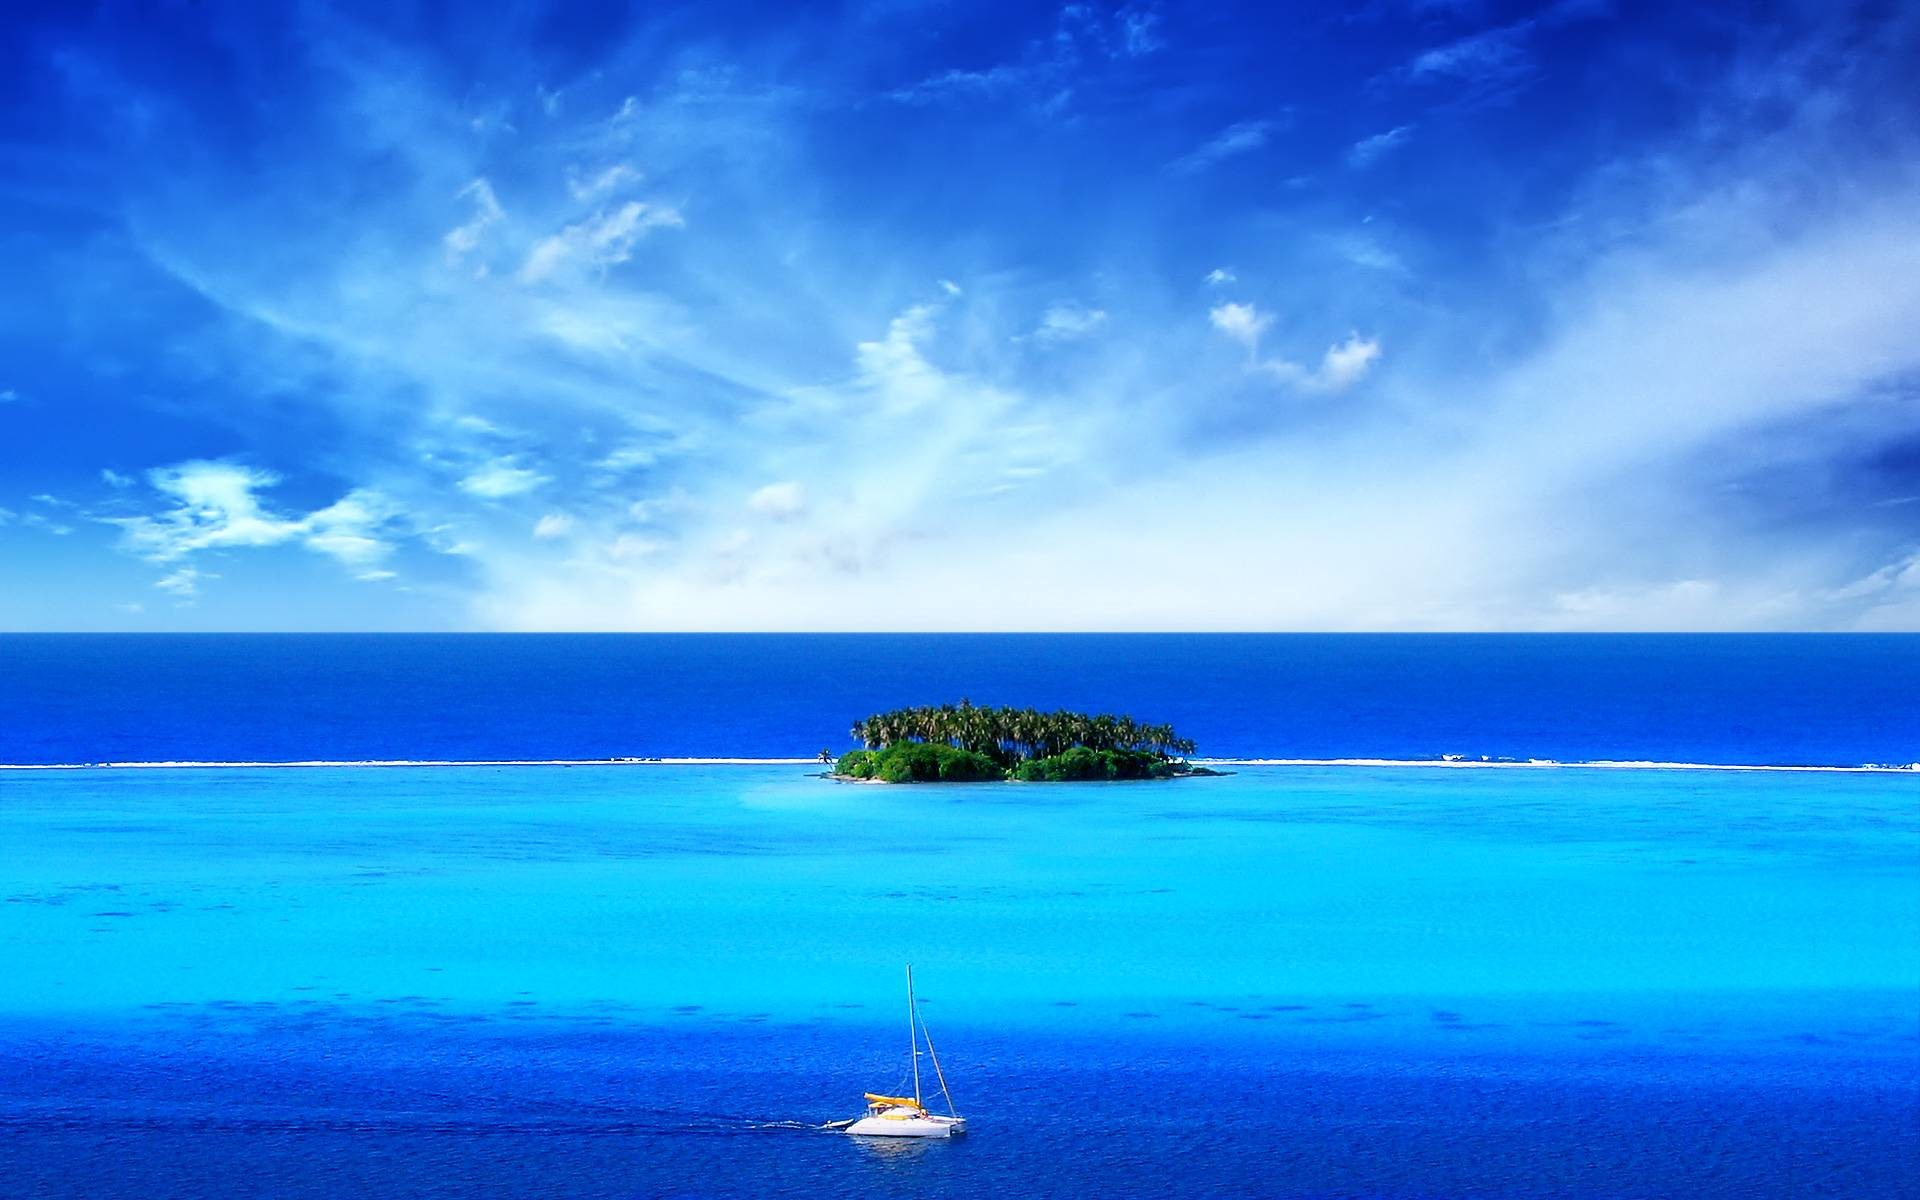 Perfect Island wallpaper for your